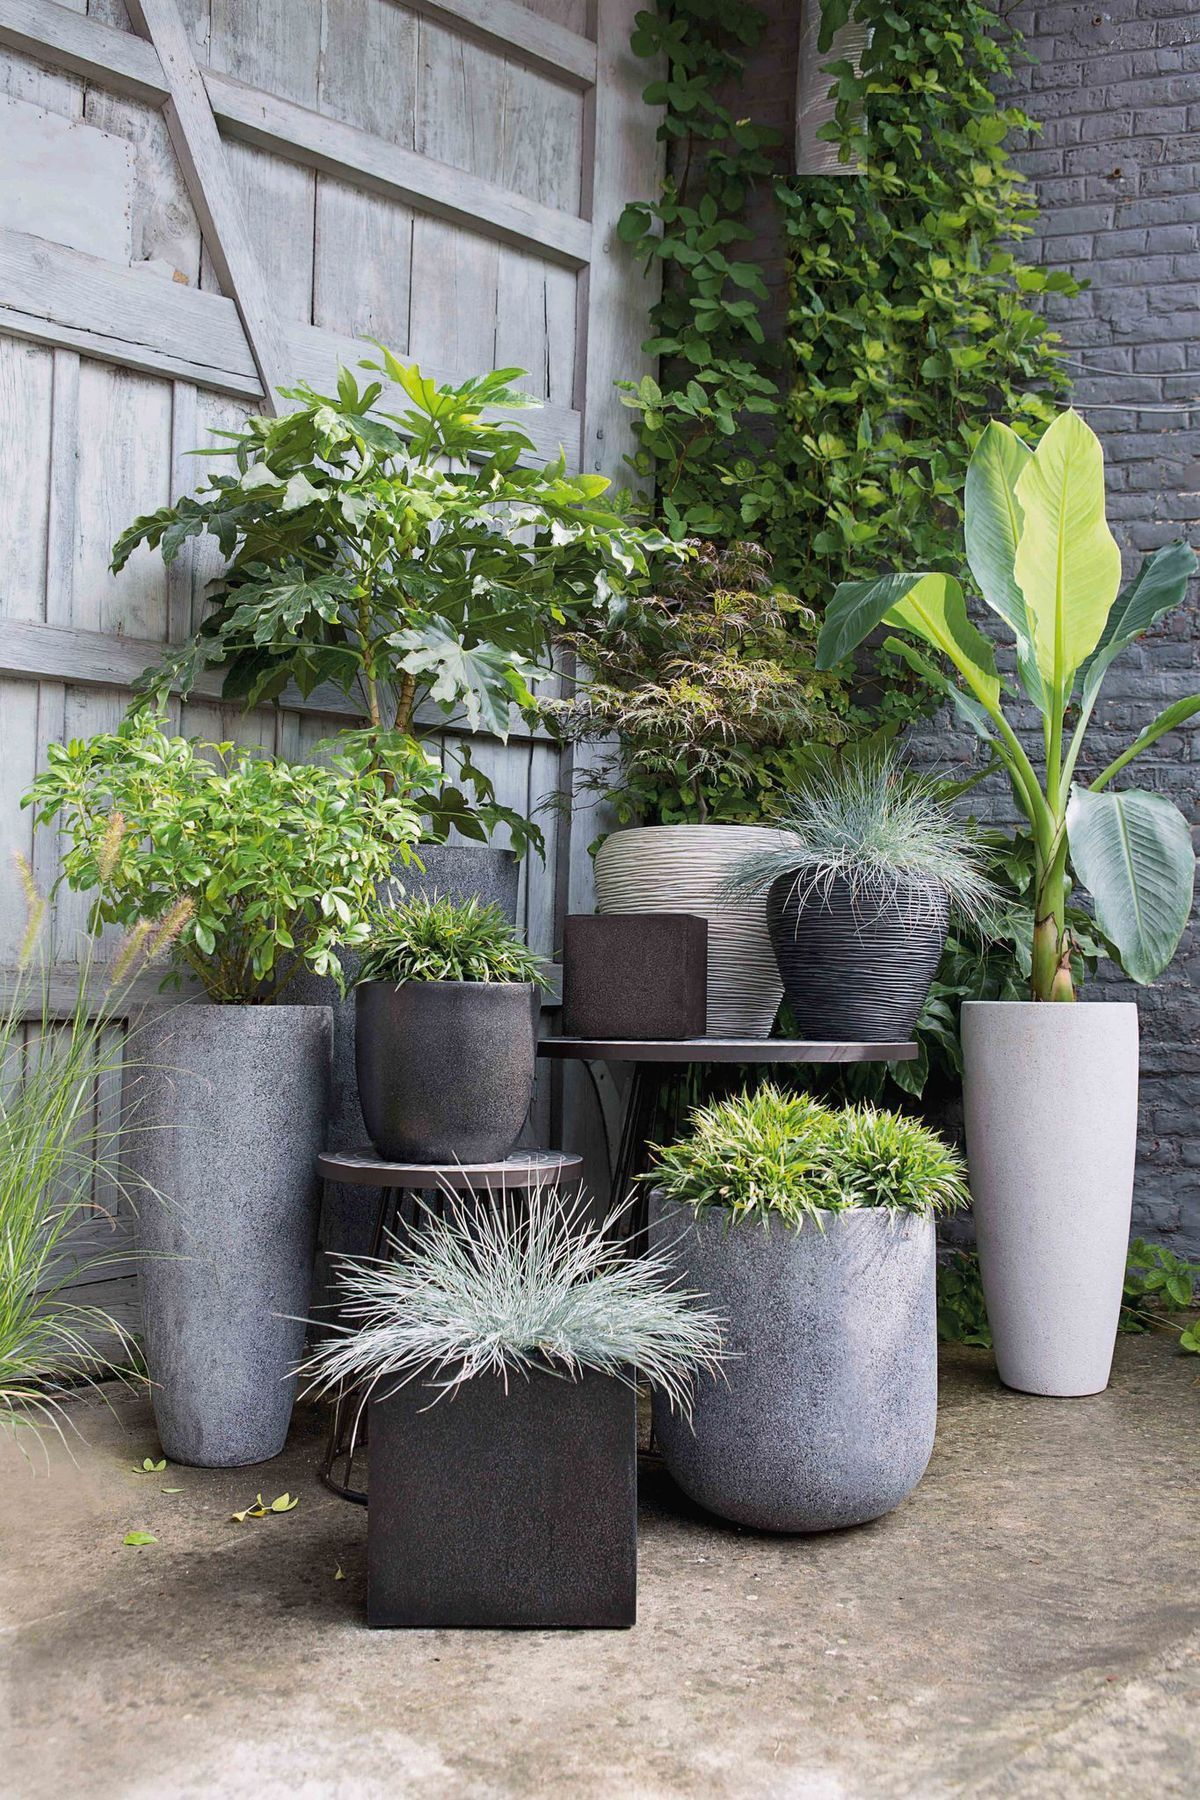 Pin By Annette Klaus On Idea Plants Garden Pots Container Gardening